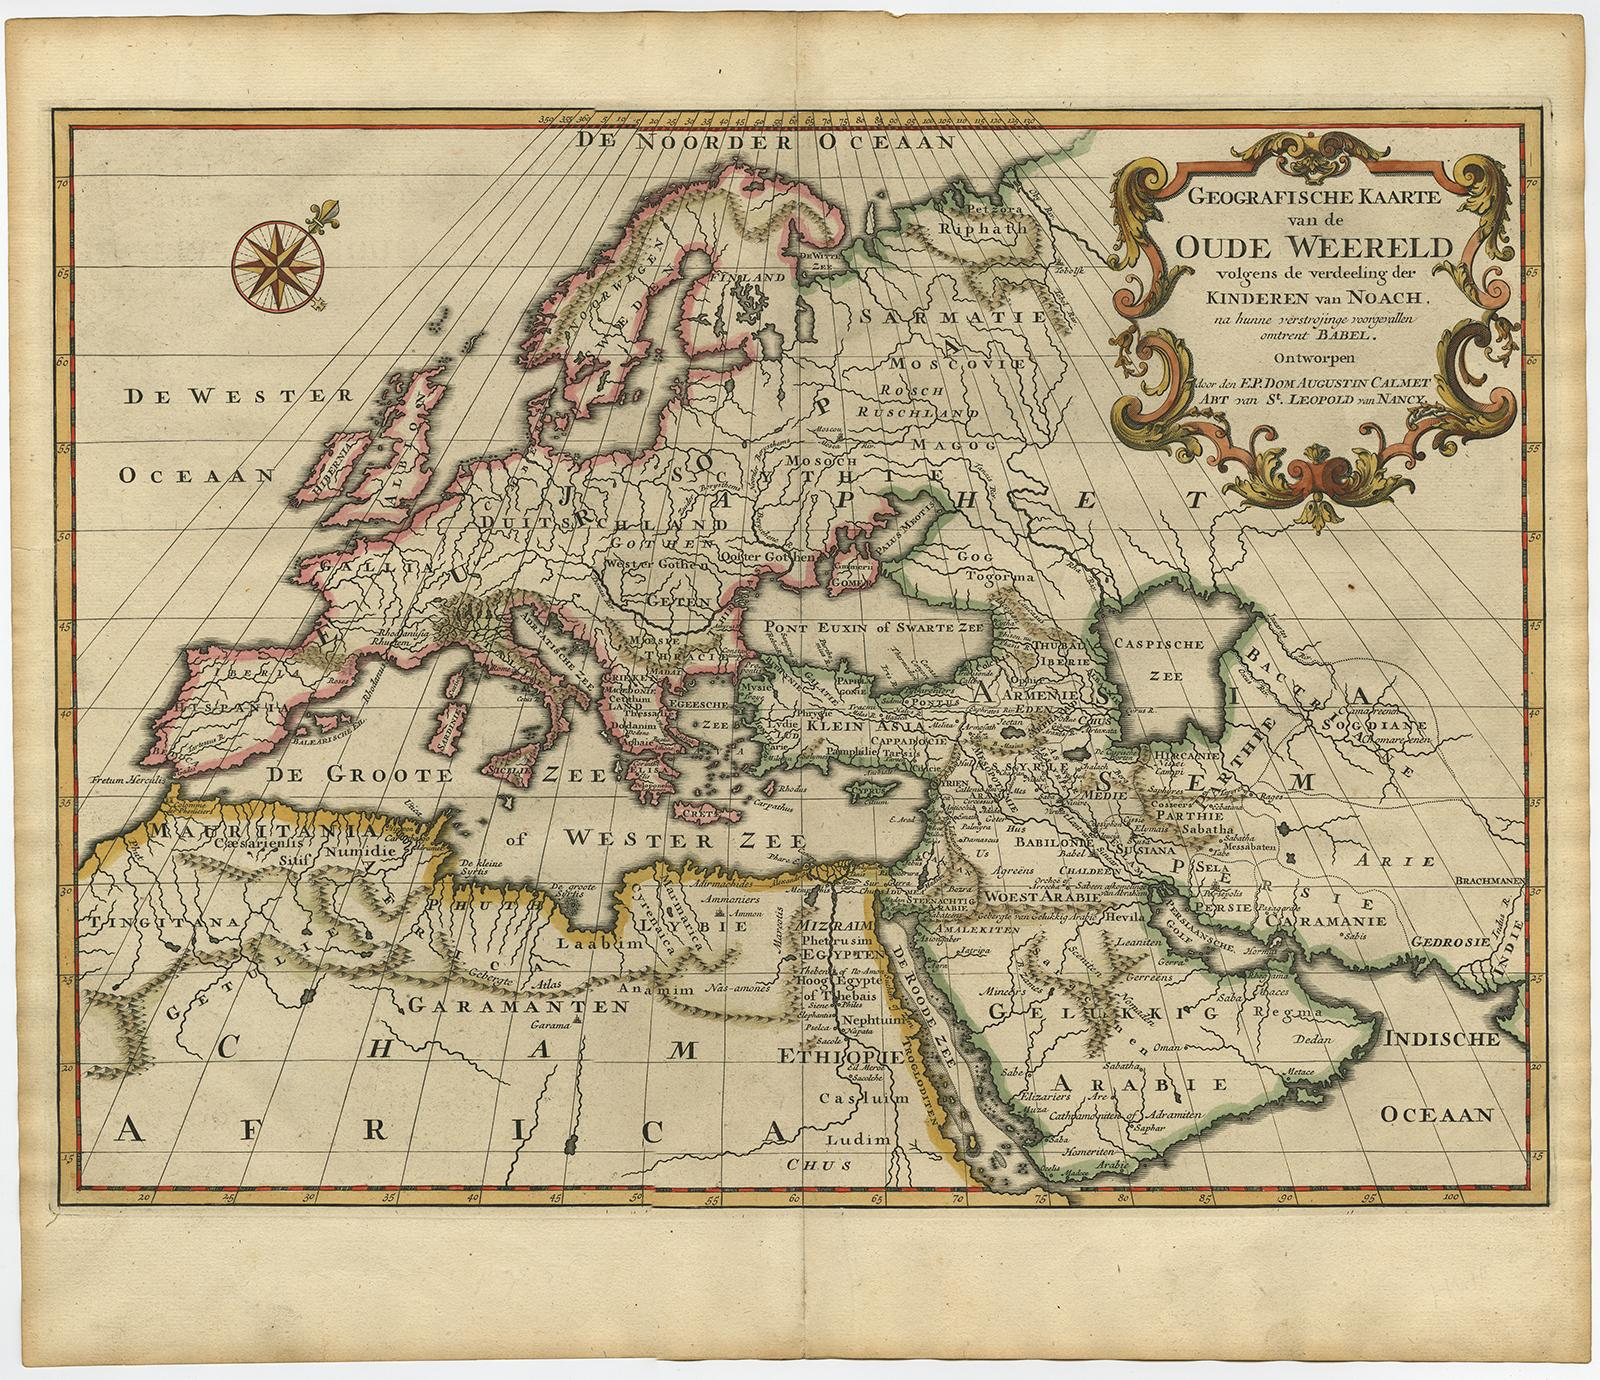 Antique map ancient world europe africa asia calmet c 1725 antique map ancient world europe africa asia calmet c gumiabroncs Choice Image